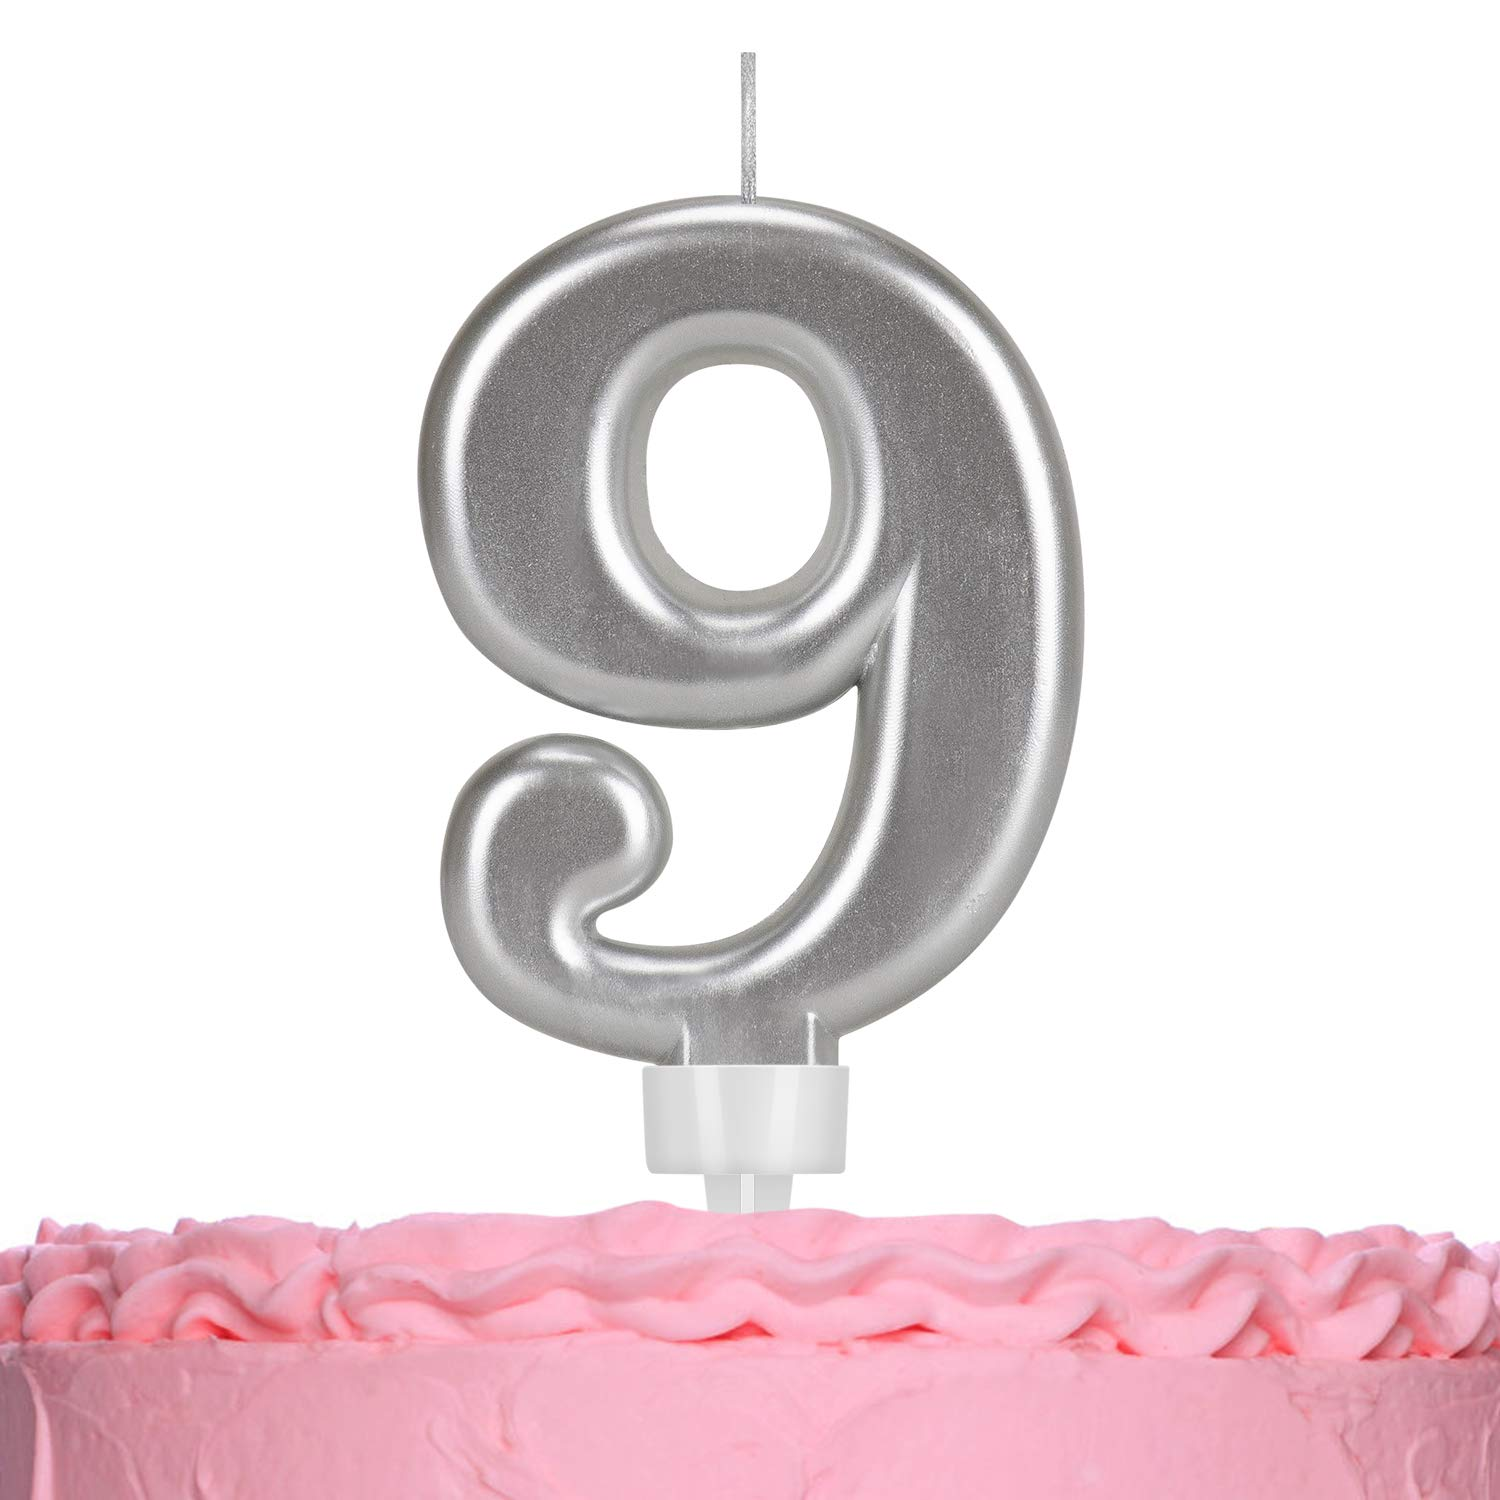 HIMETSUYA Brithday Candles Number, Colorful Number 0-9 Birthday Cake Candles for Birthday, Wedding, Theme Party, Celebrating Festivals (Number 9)